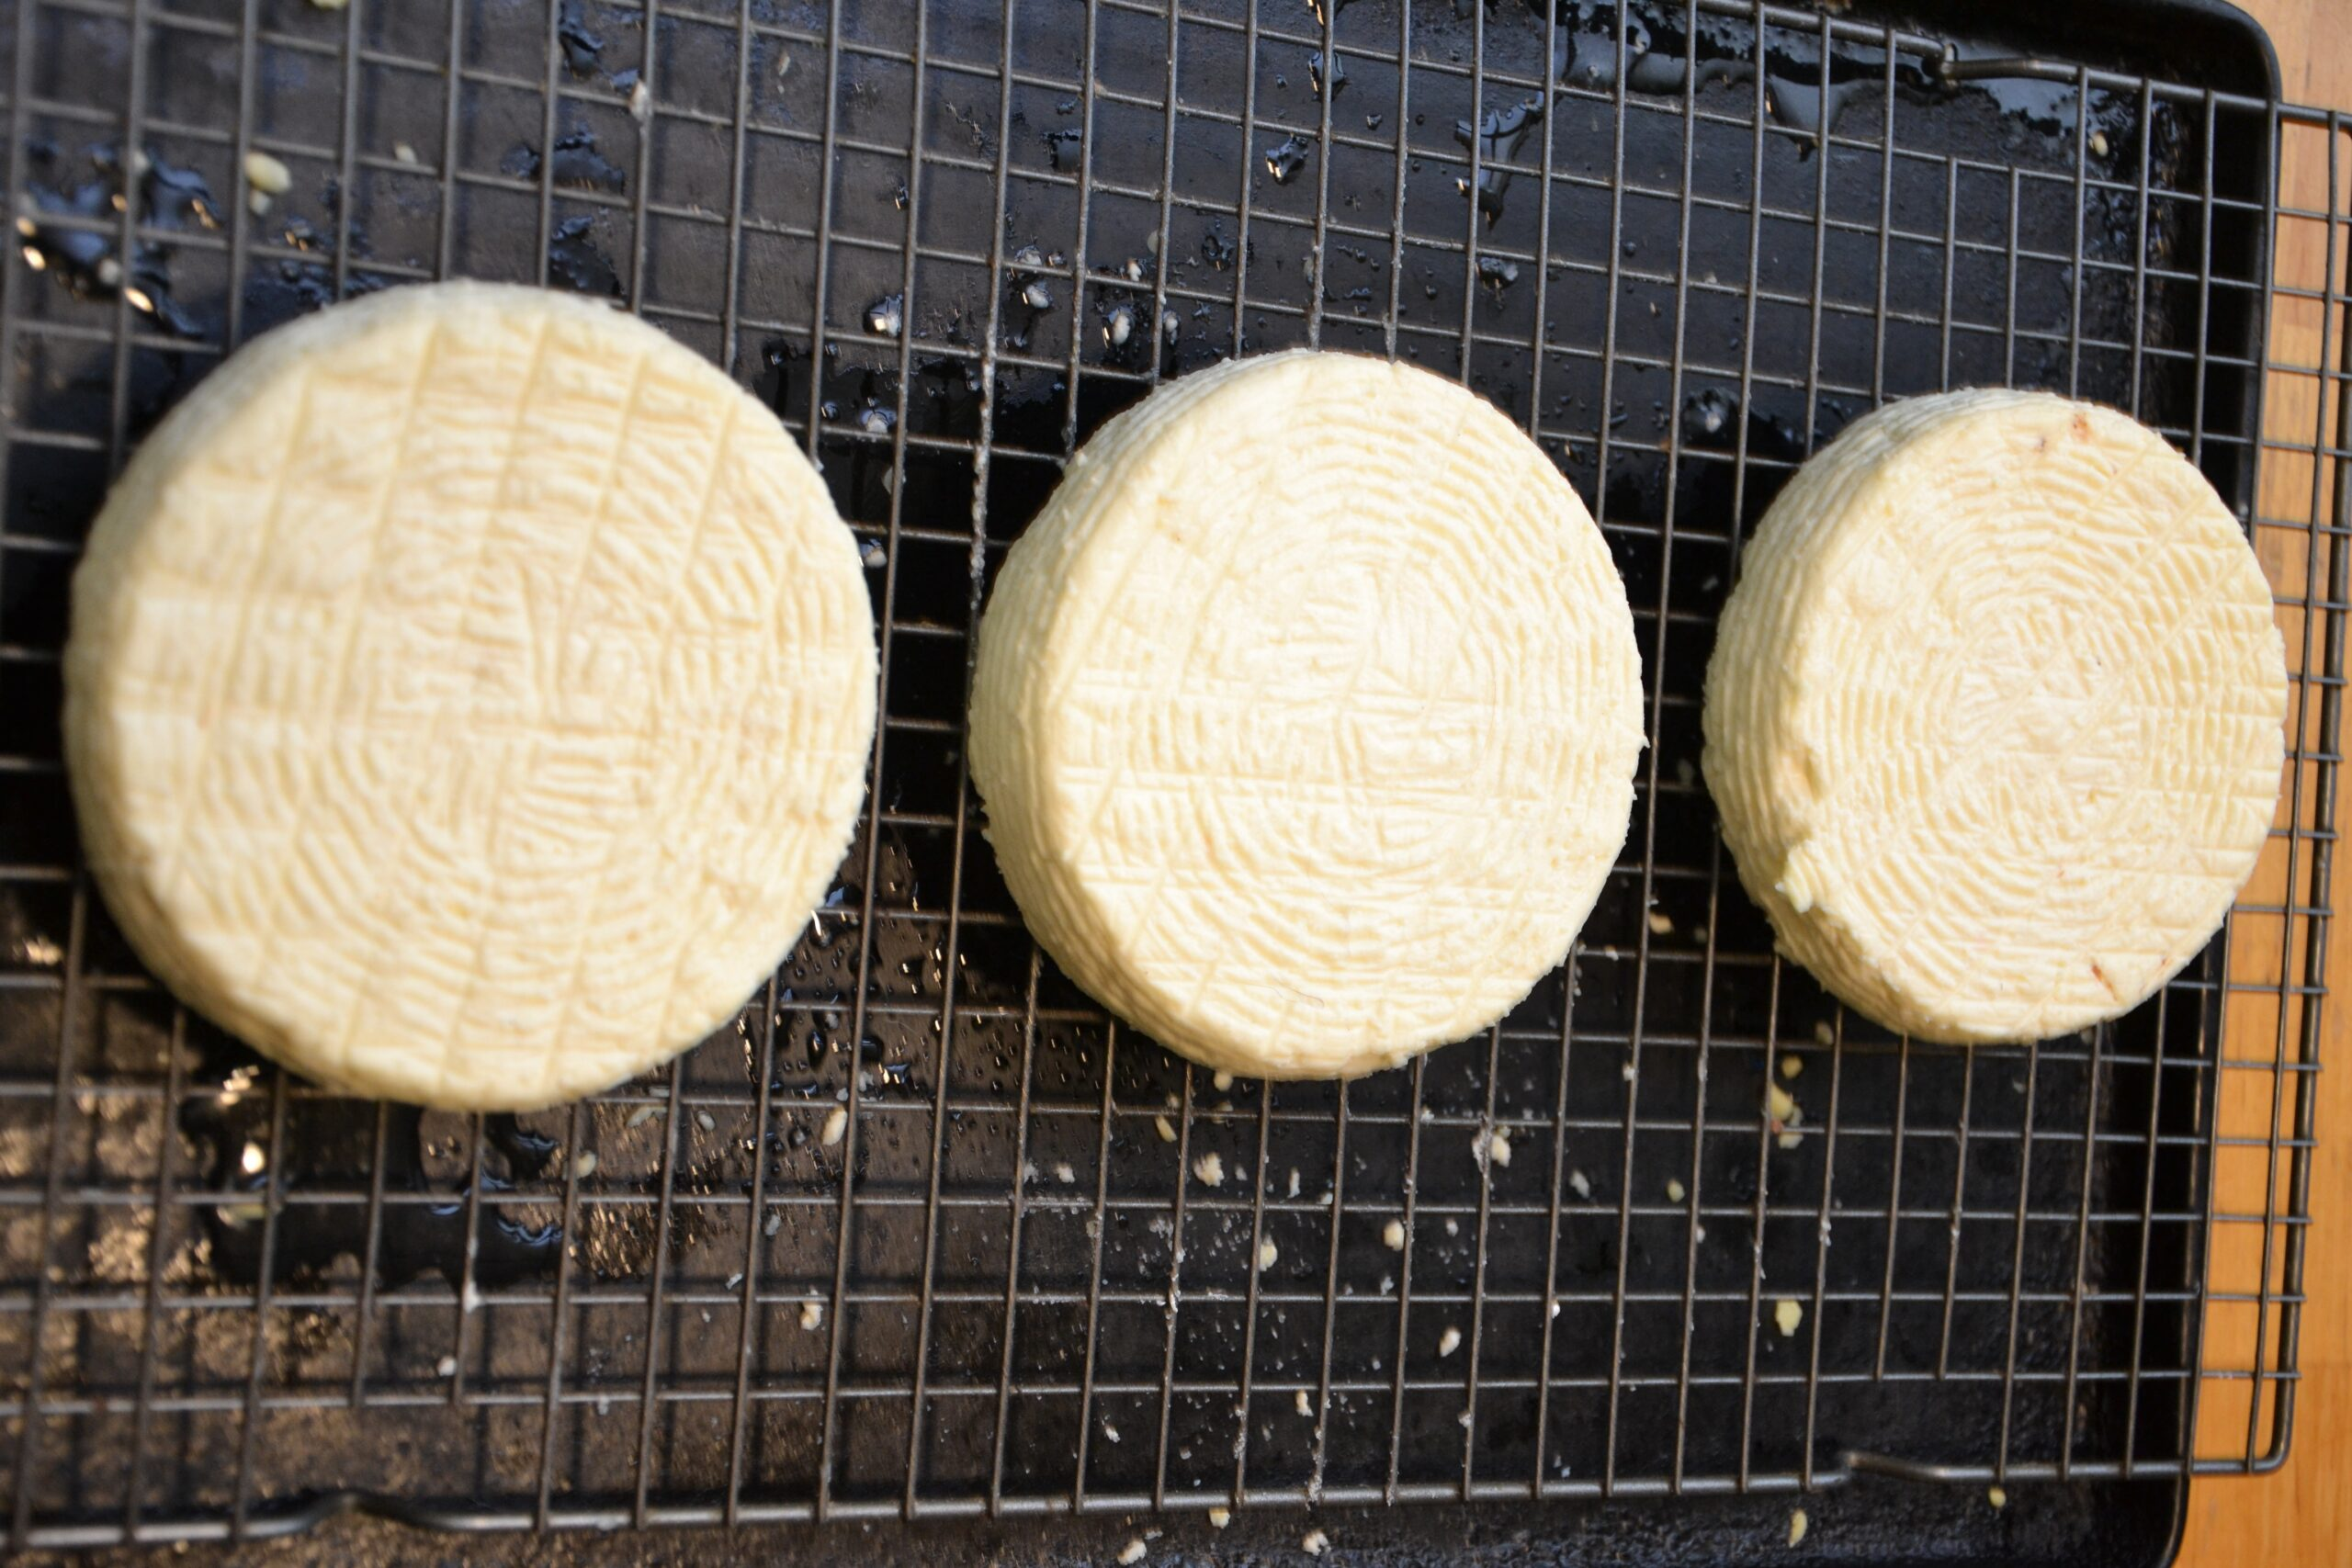 Three wheels of camembert-style cheese